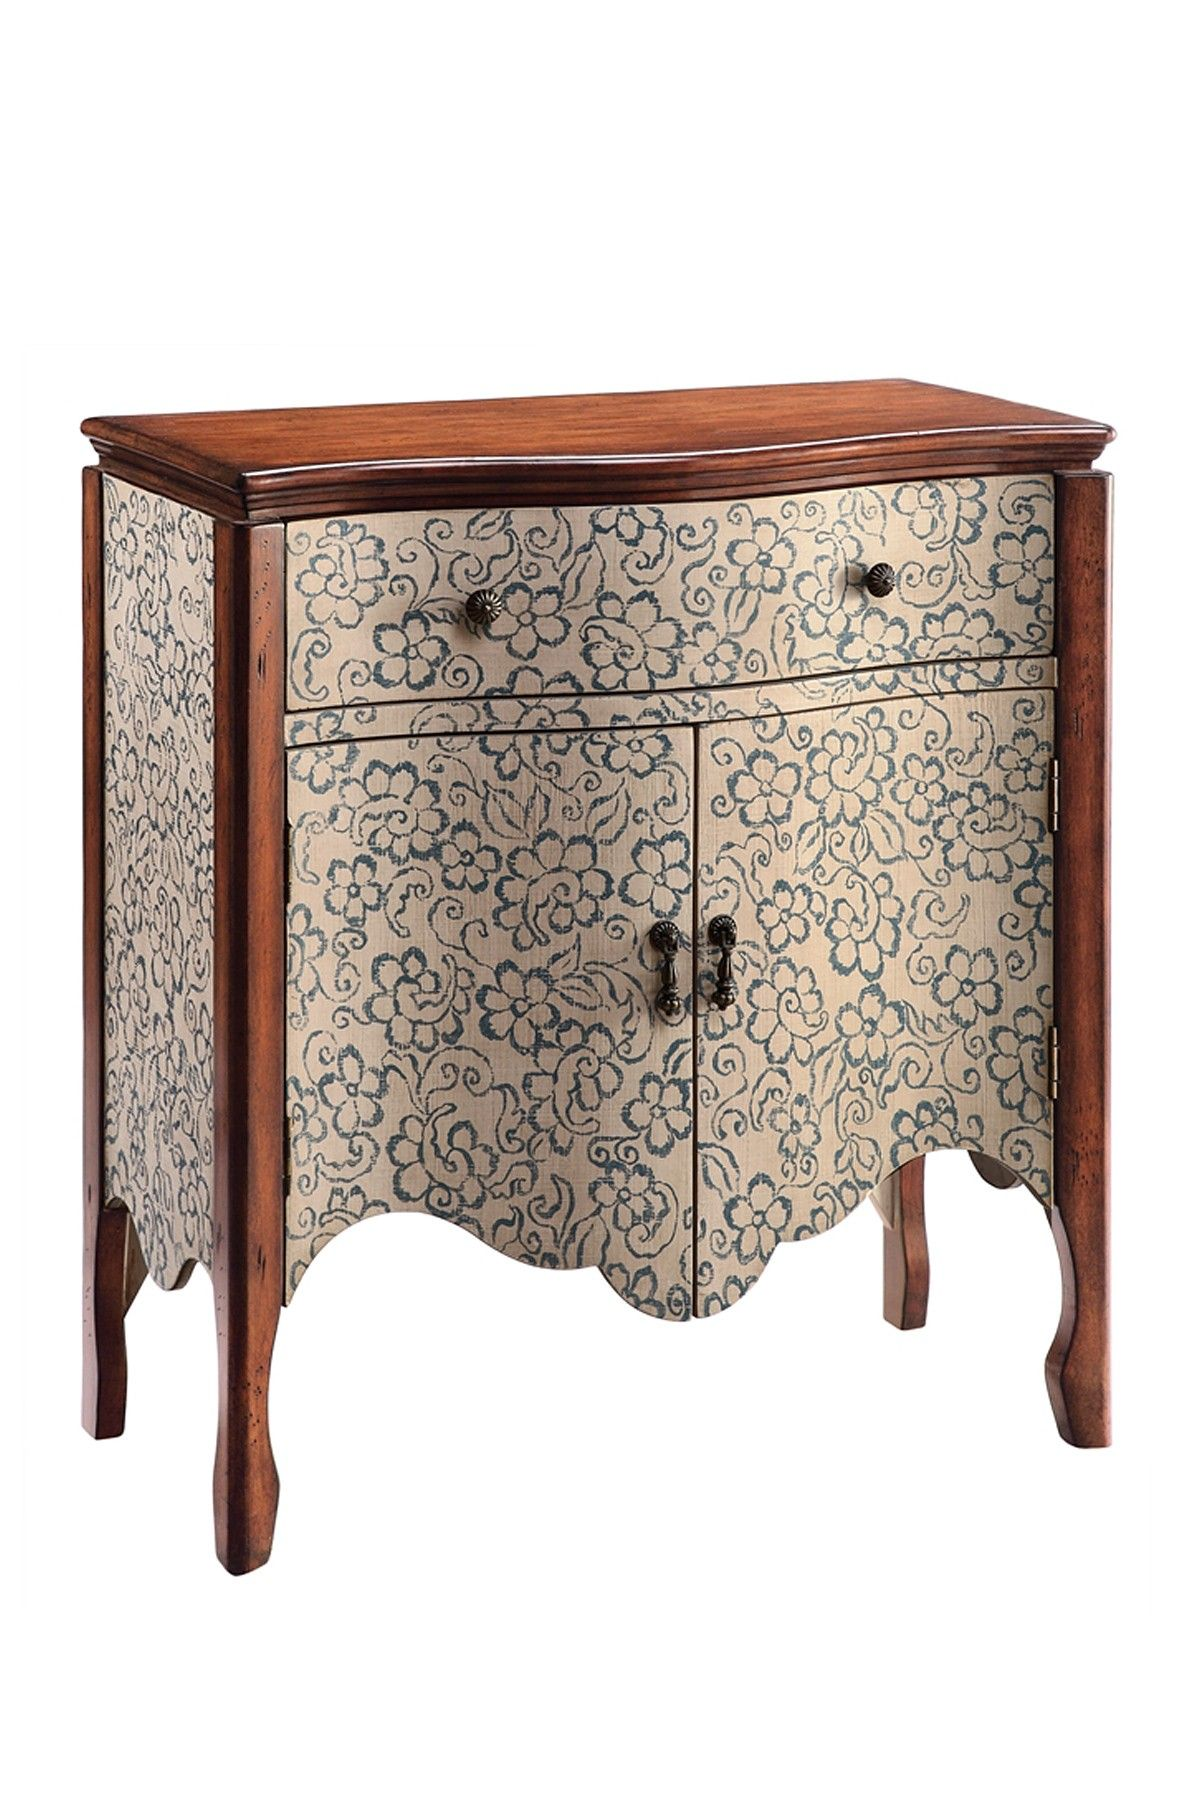 Osiris Cabinet One Drawer Hand Painted Accent Cabinet With Two Doors And A  Scalloped Apron. Product: Cabinet Construction Material: WoodColor: Brown  ...